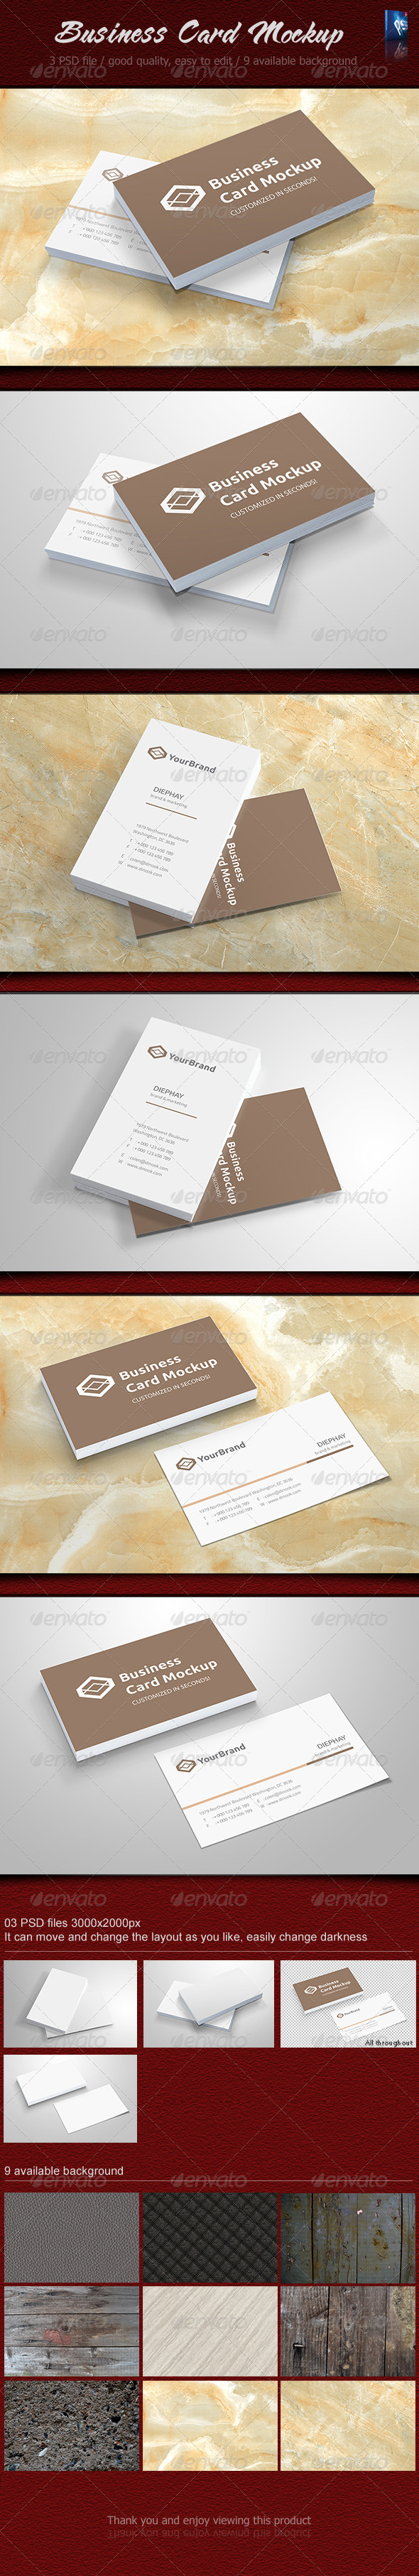 Business card Mockup | Color change, Perspective and Colors